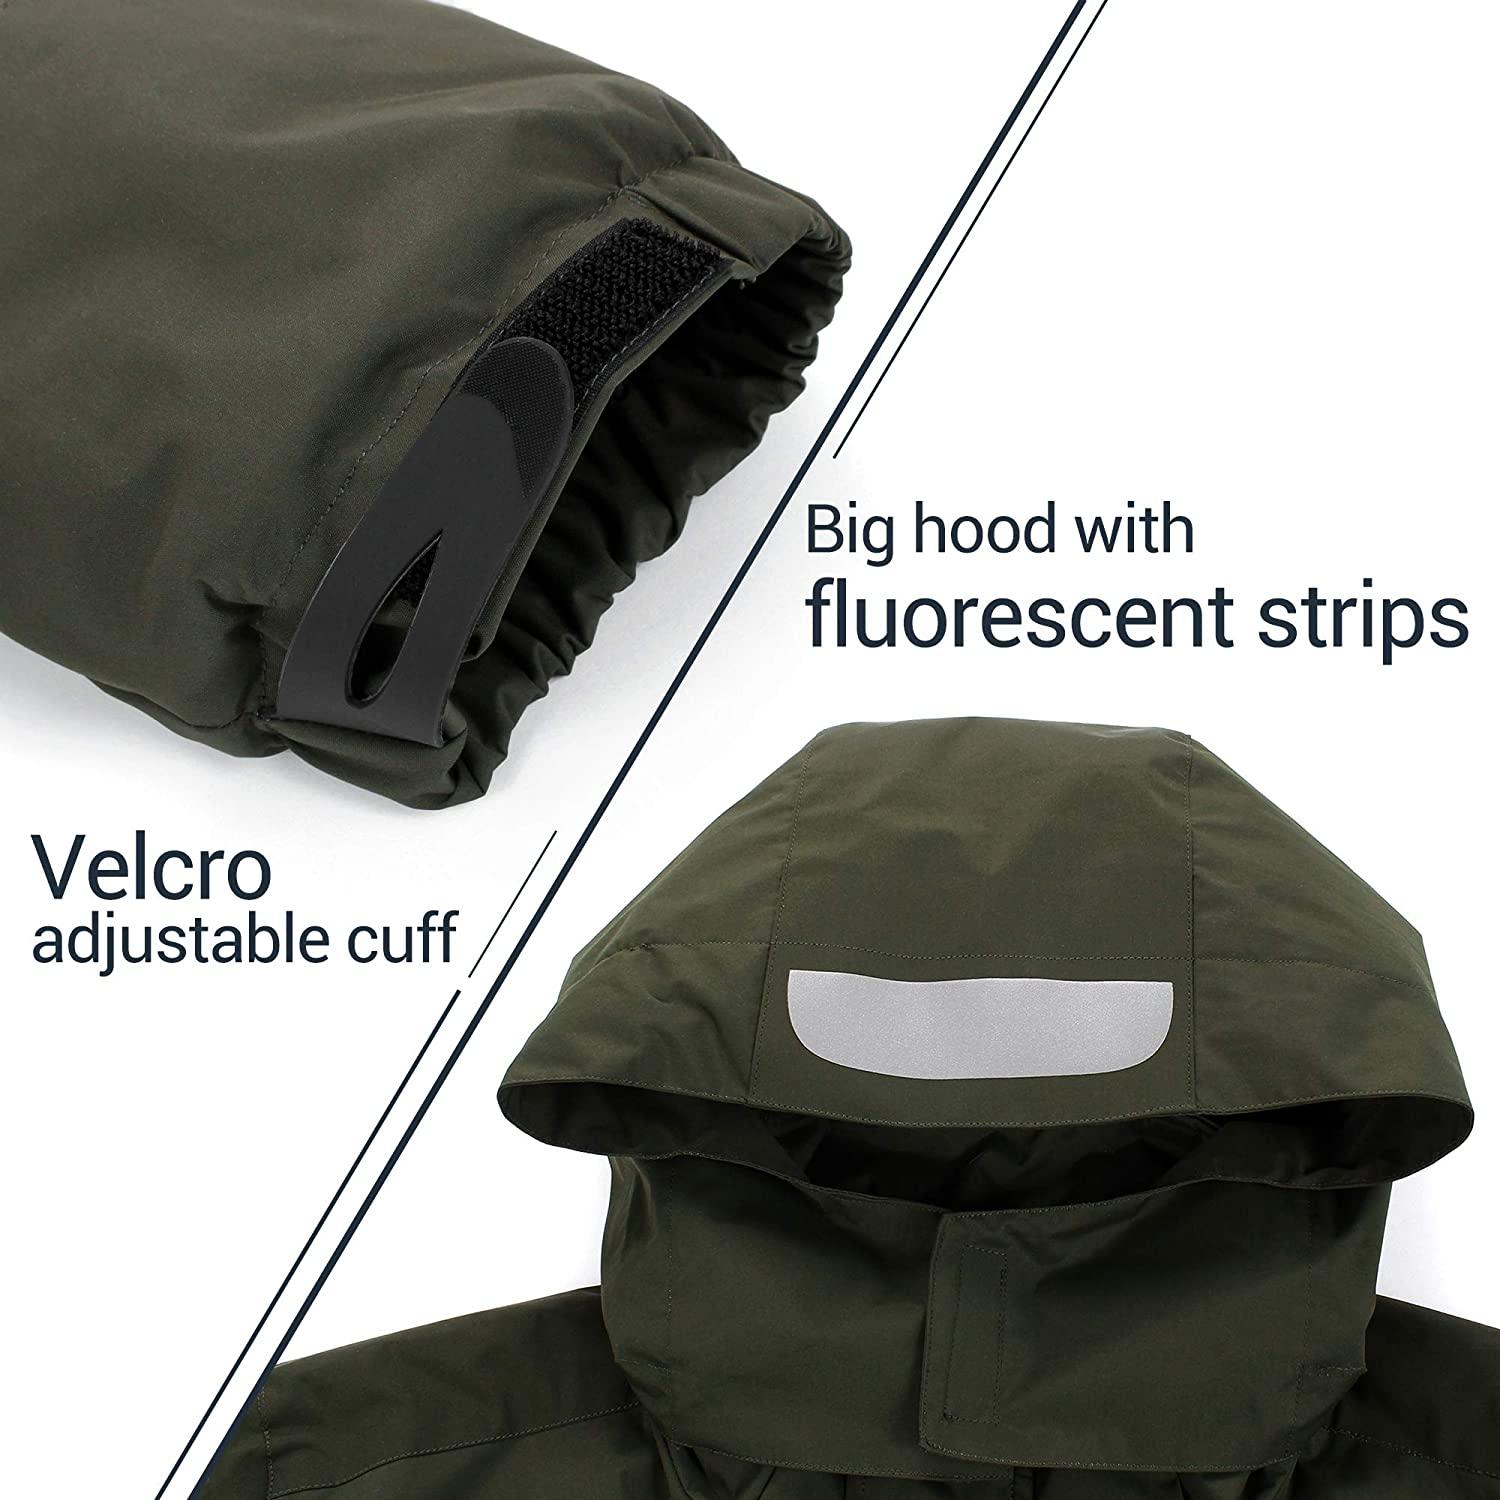 miiooper Mens Outdoor Jacket with Hood Detachable Waterproof Sport Mountain Jackets Coat for Hiking Camping Ski